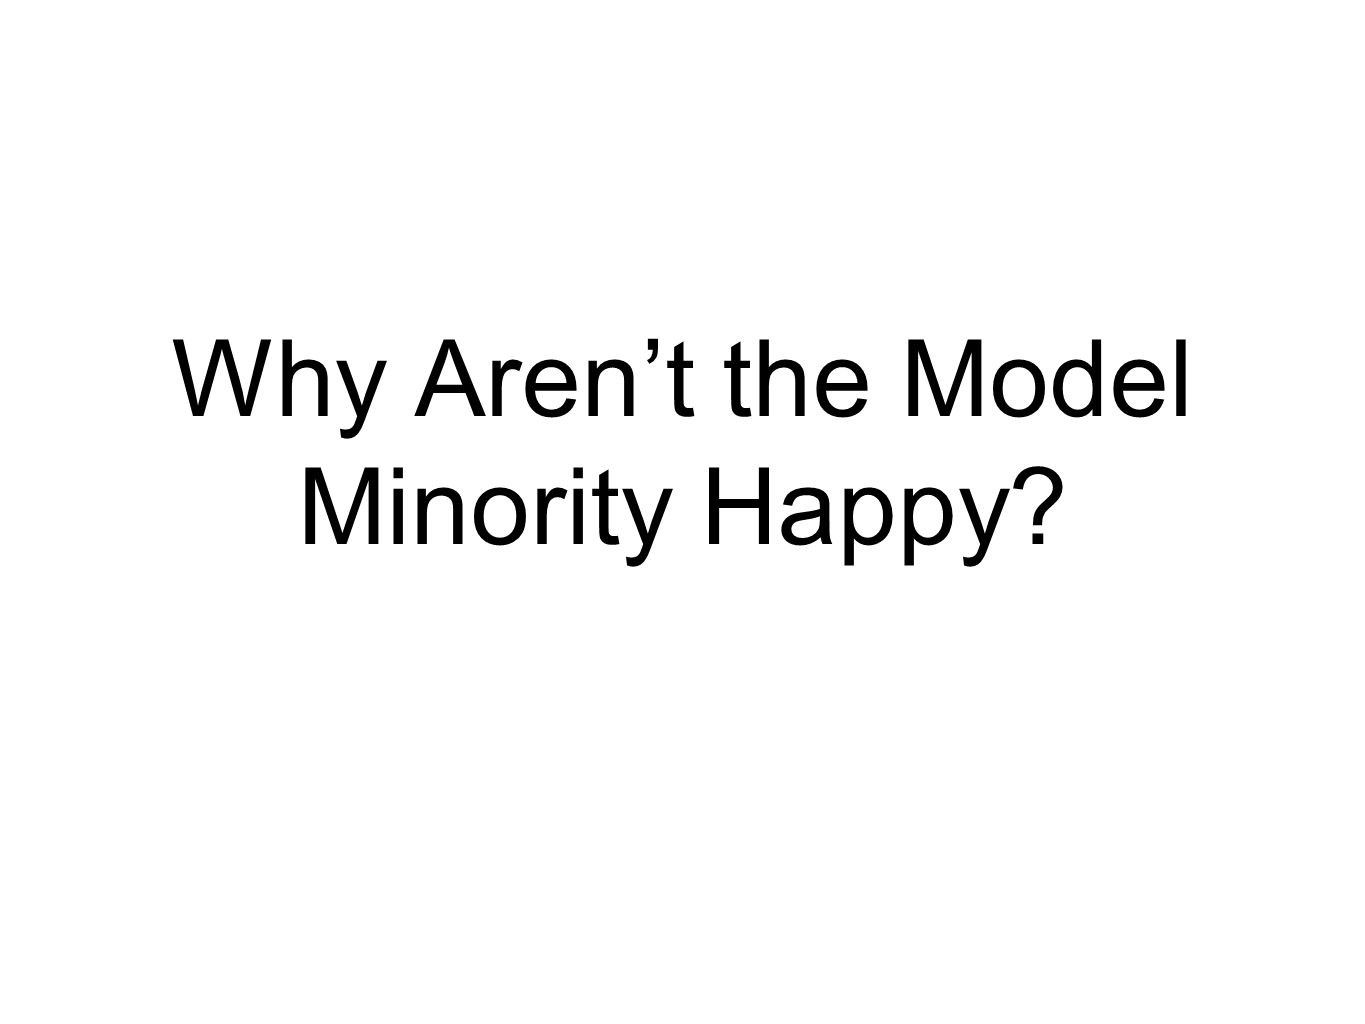 Why Aren't the Model Minority Happy